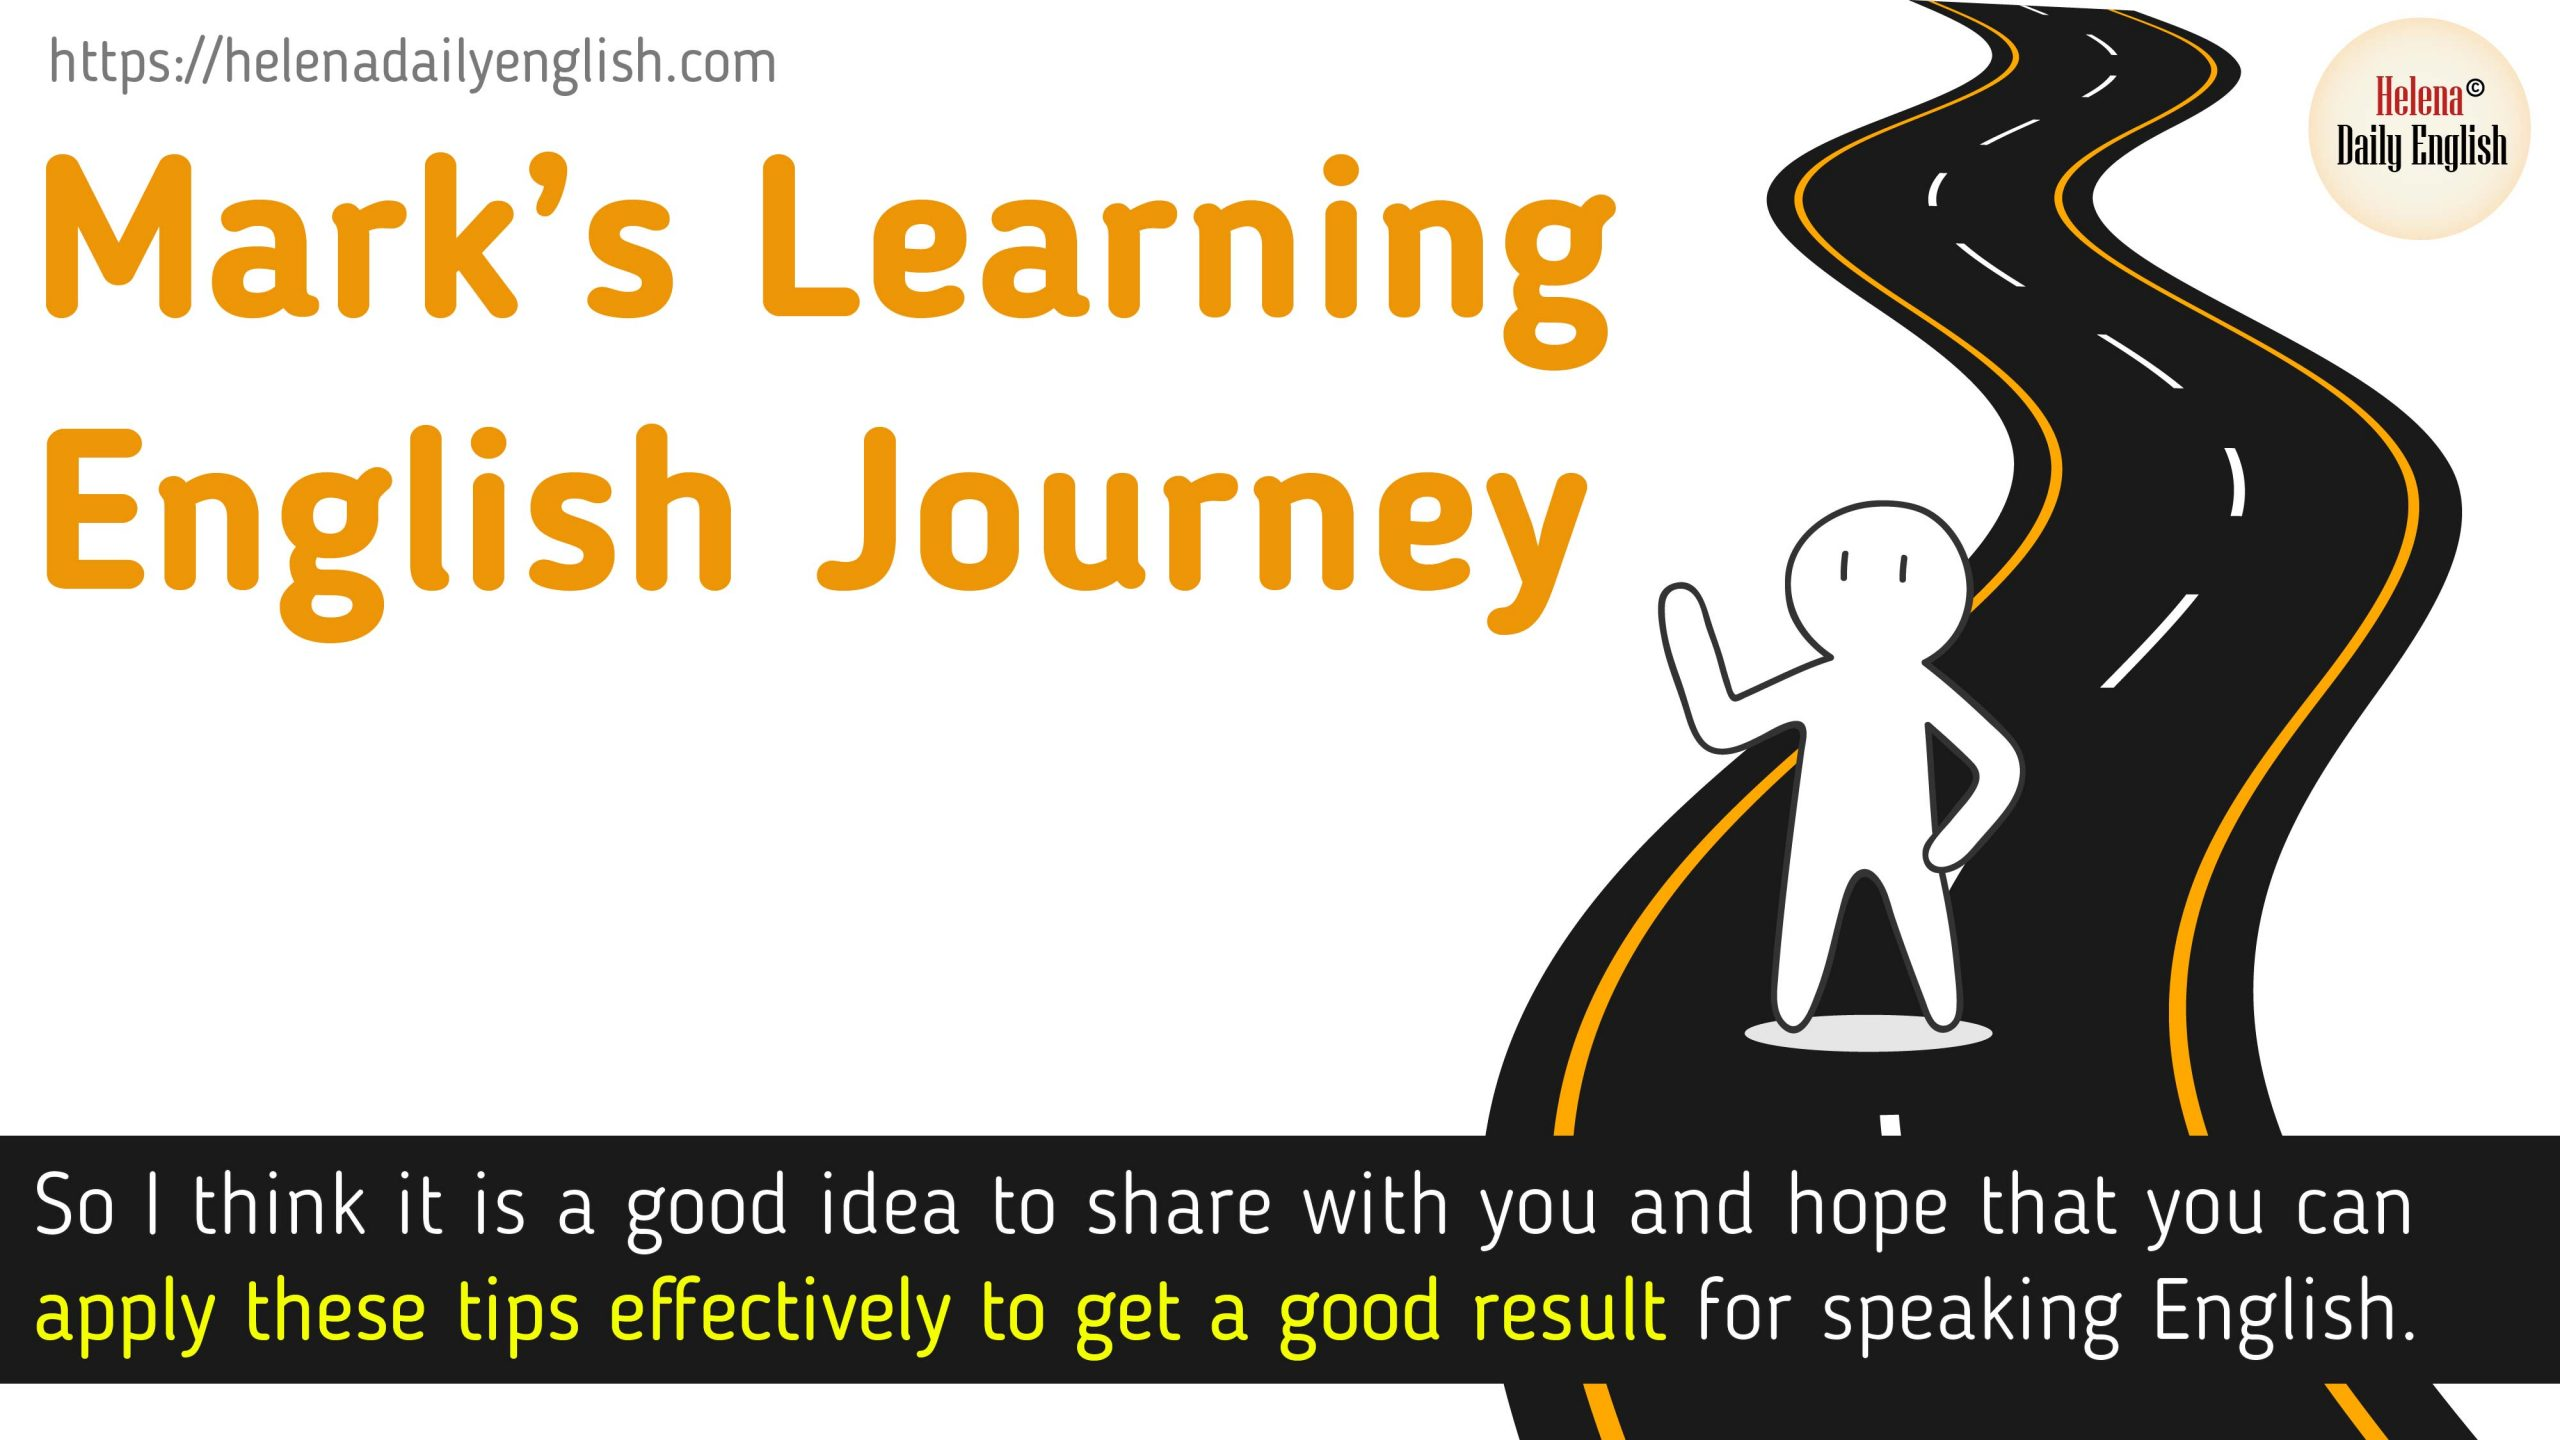 English for Beginners | 5 Tips for speaking English Naturally and Effectively (Mark's Journey) Here are 5 simple tips used for self-study speaking English for beginner level. I think maybe you will find these tips are somehow simple and familiar but they work well for Mark